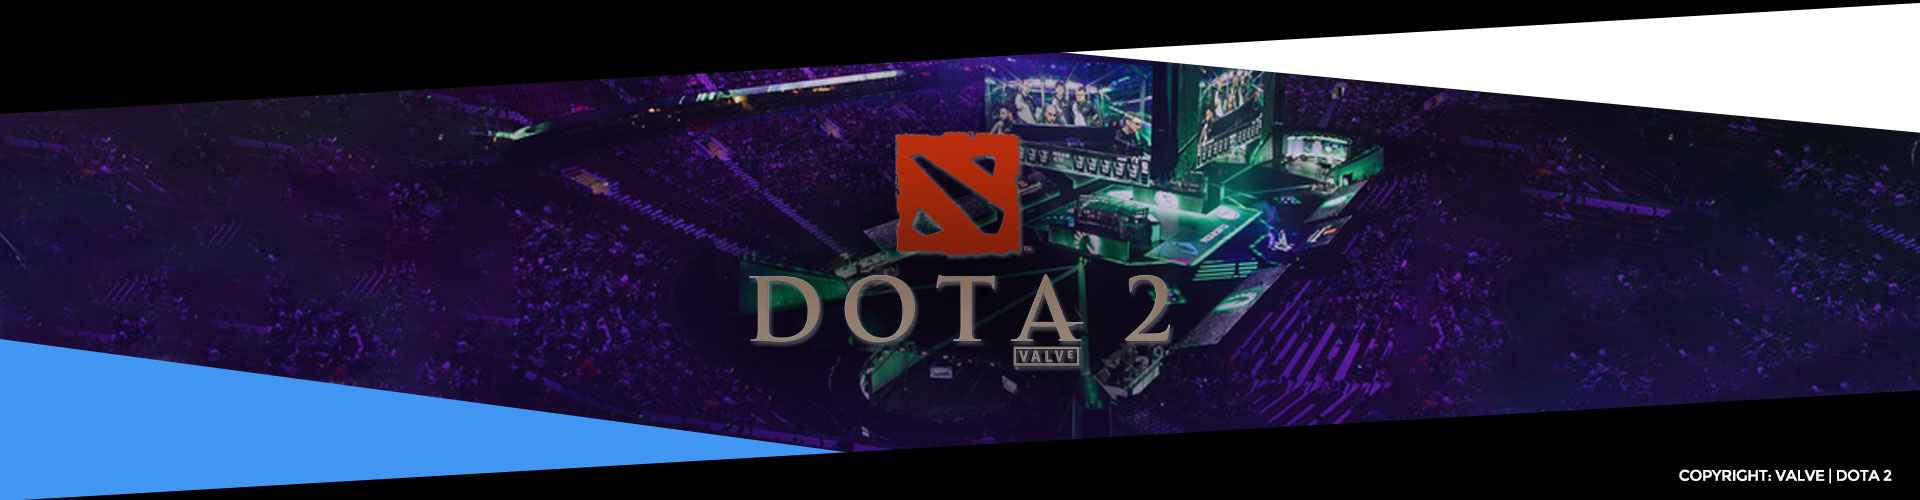 Dota2 2020 Top 10 team ranking